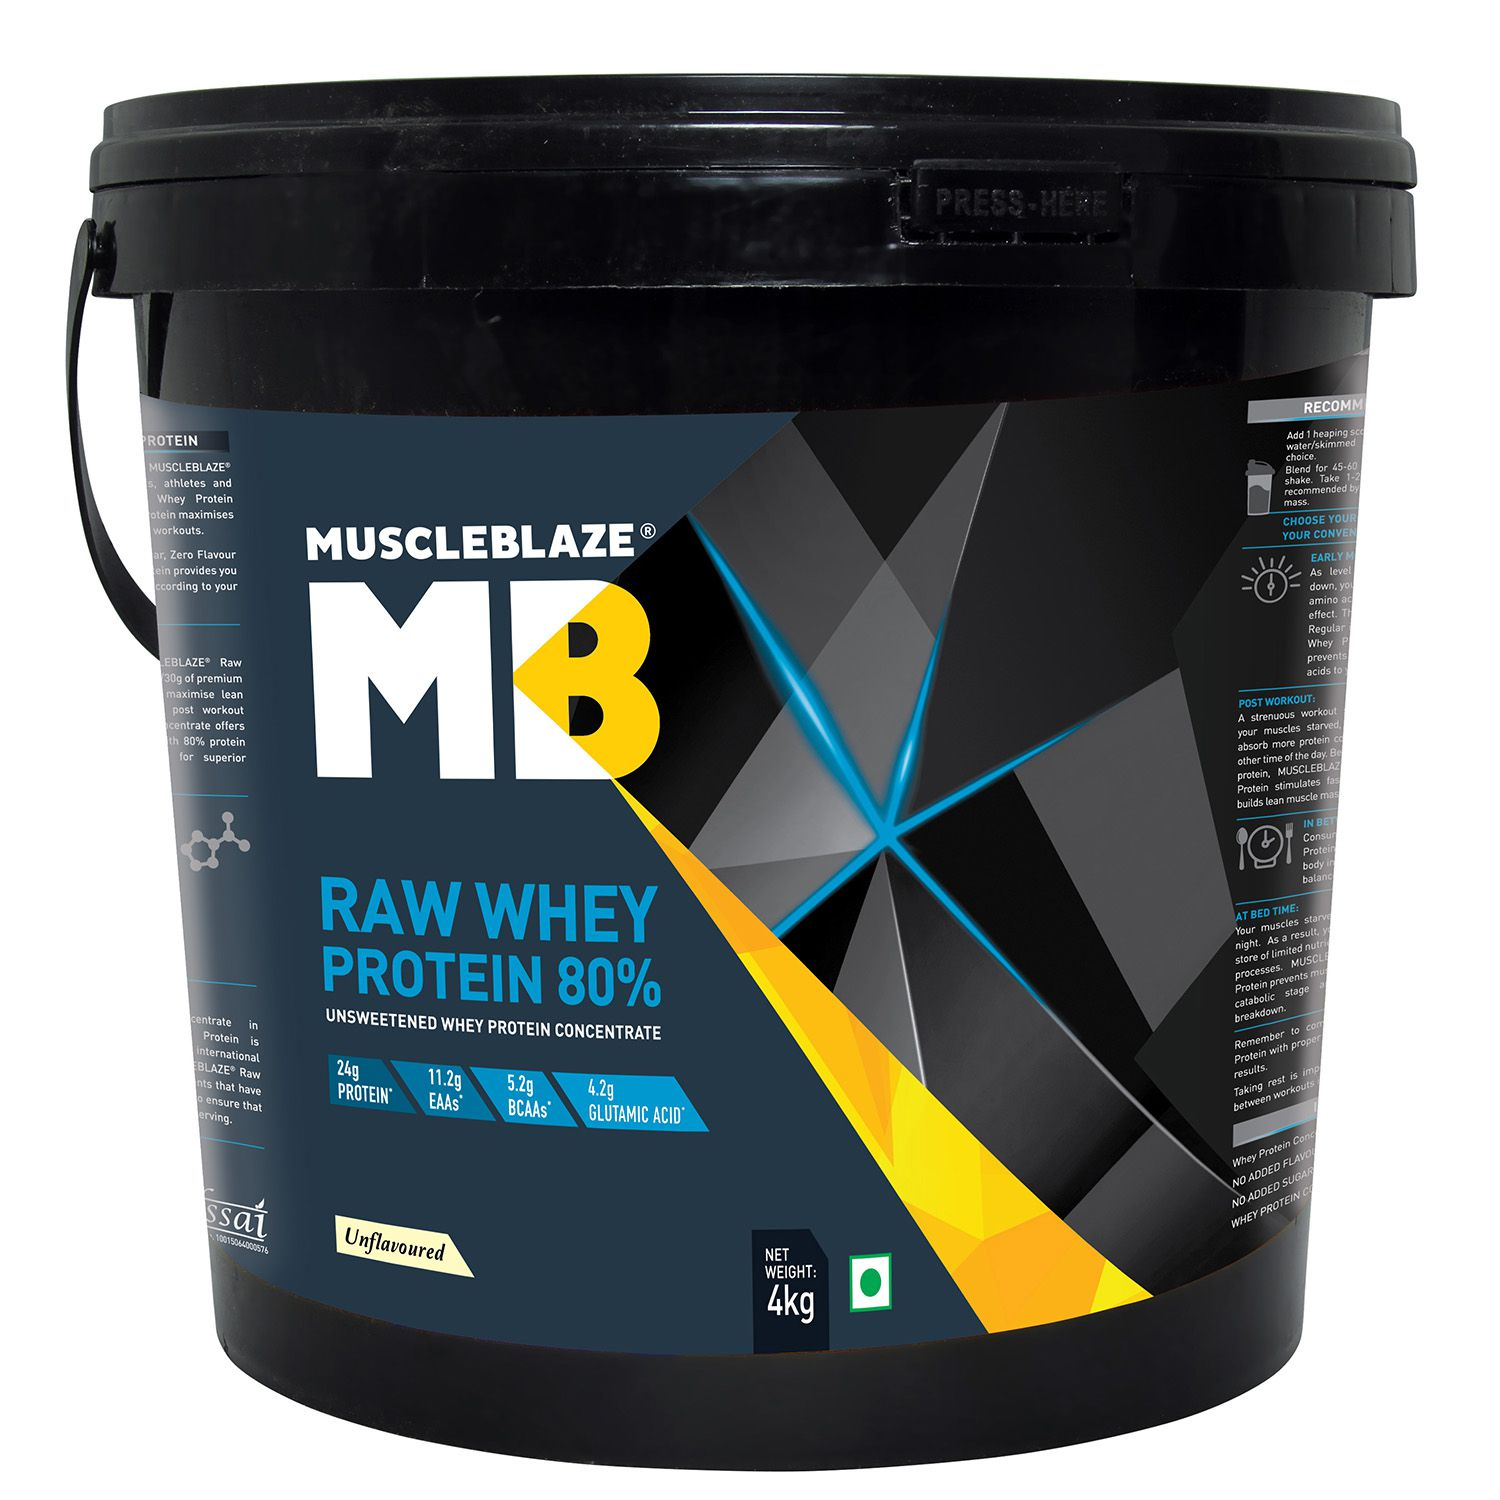 MuscleBlaze Raw Whey Protein, Unflavored 131 Servings, 8.8 lb/ 4 kg